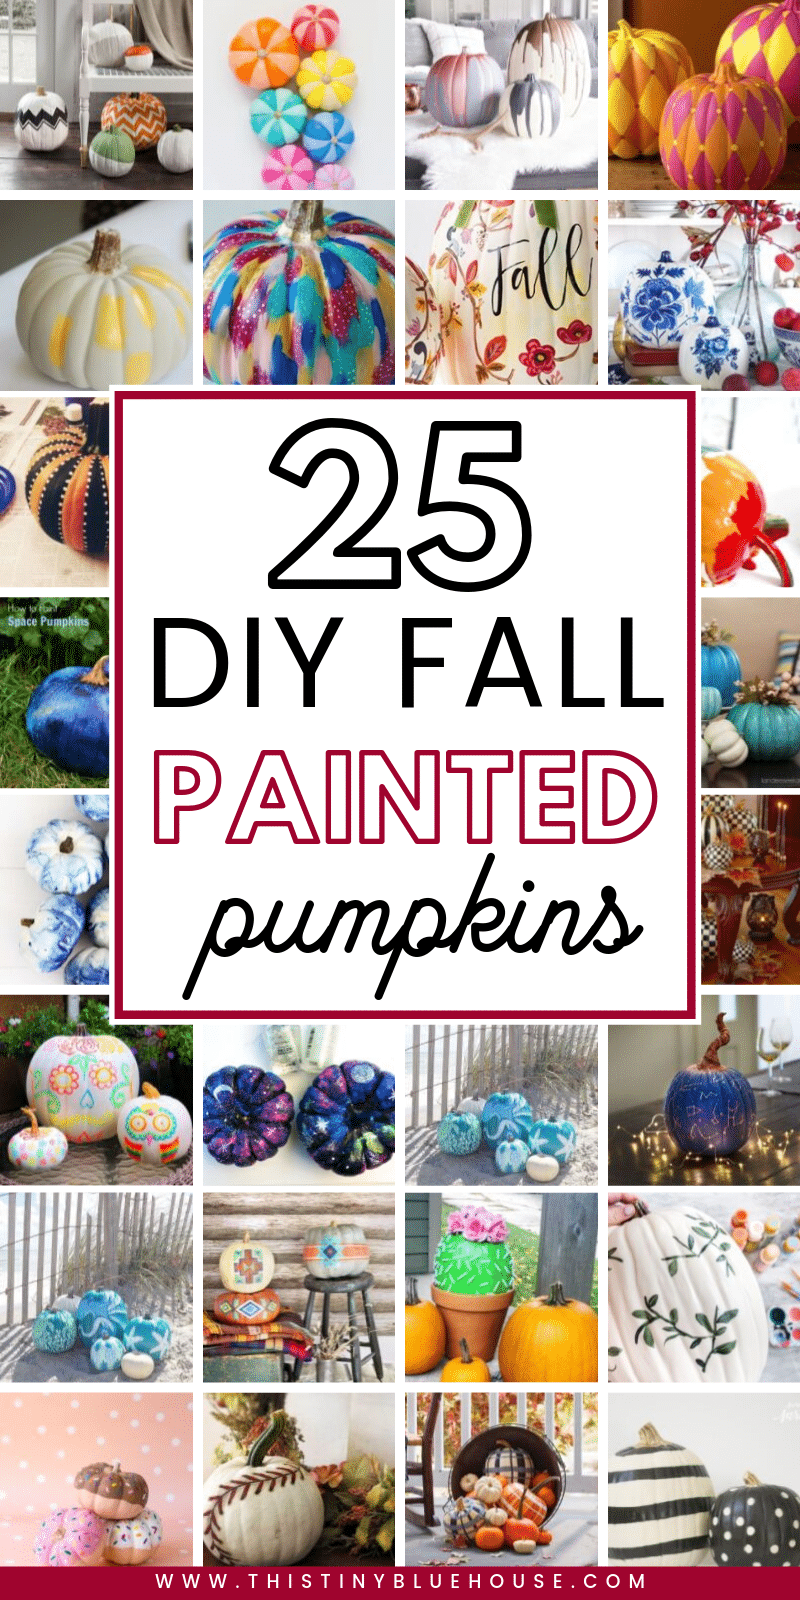 Elevate your fall decor with one or more of these gorgeous painted pumpkin ideas. From Farmhouse to monochrome there is a painted pumpkin to fit any decor. #falldecor #diyfalldecor #nocarvepumpkins #paintedpumpkins #easypaintedpumpkinideas #paintedpumpkinsforfall